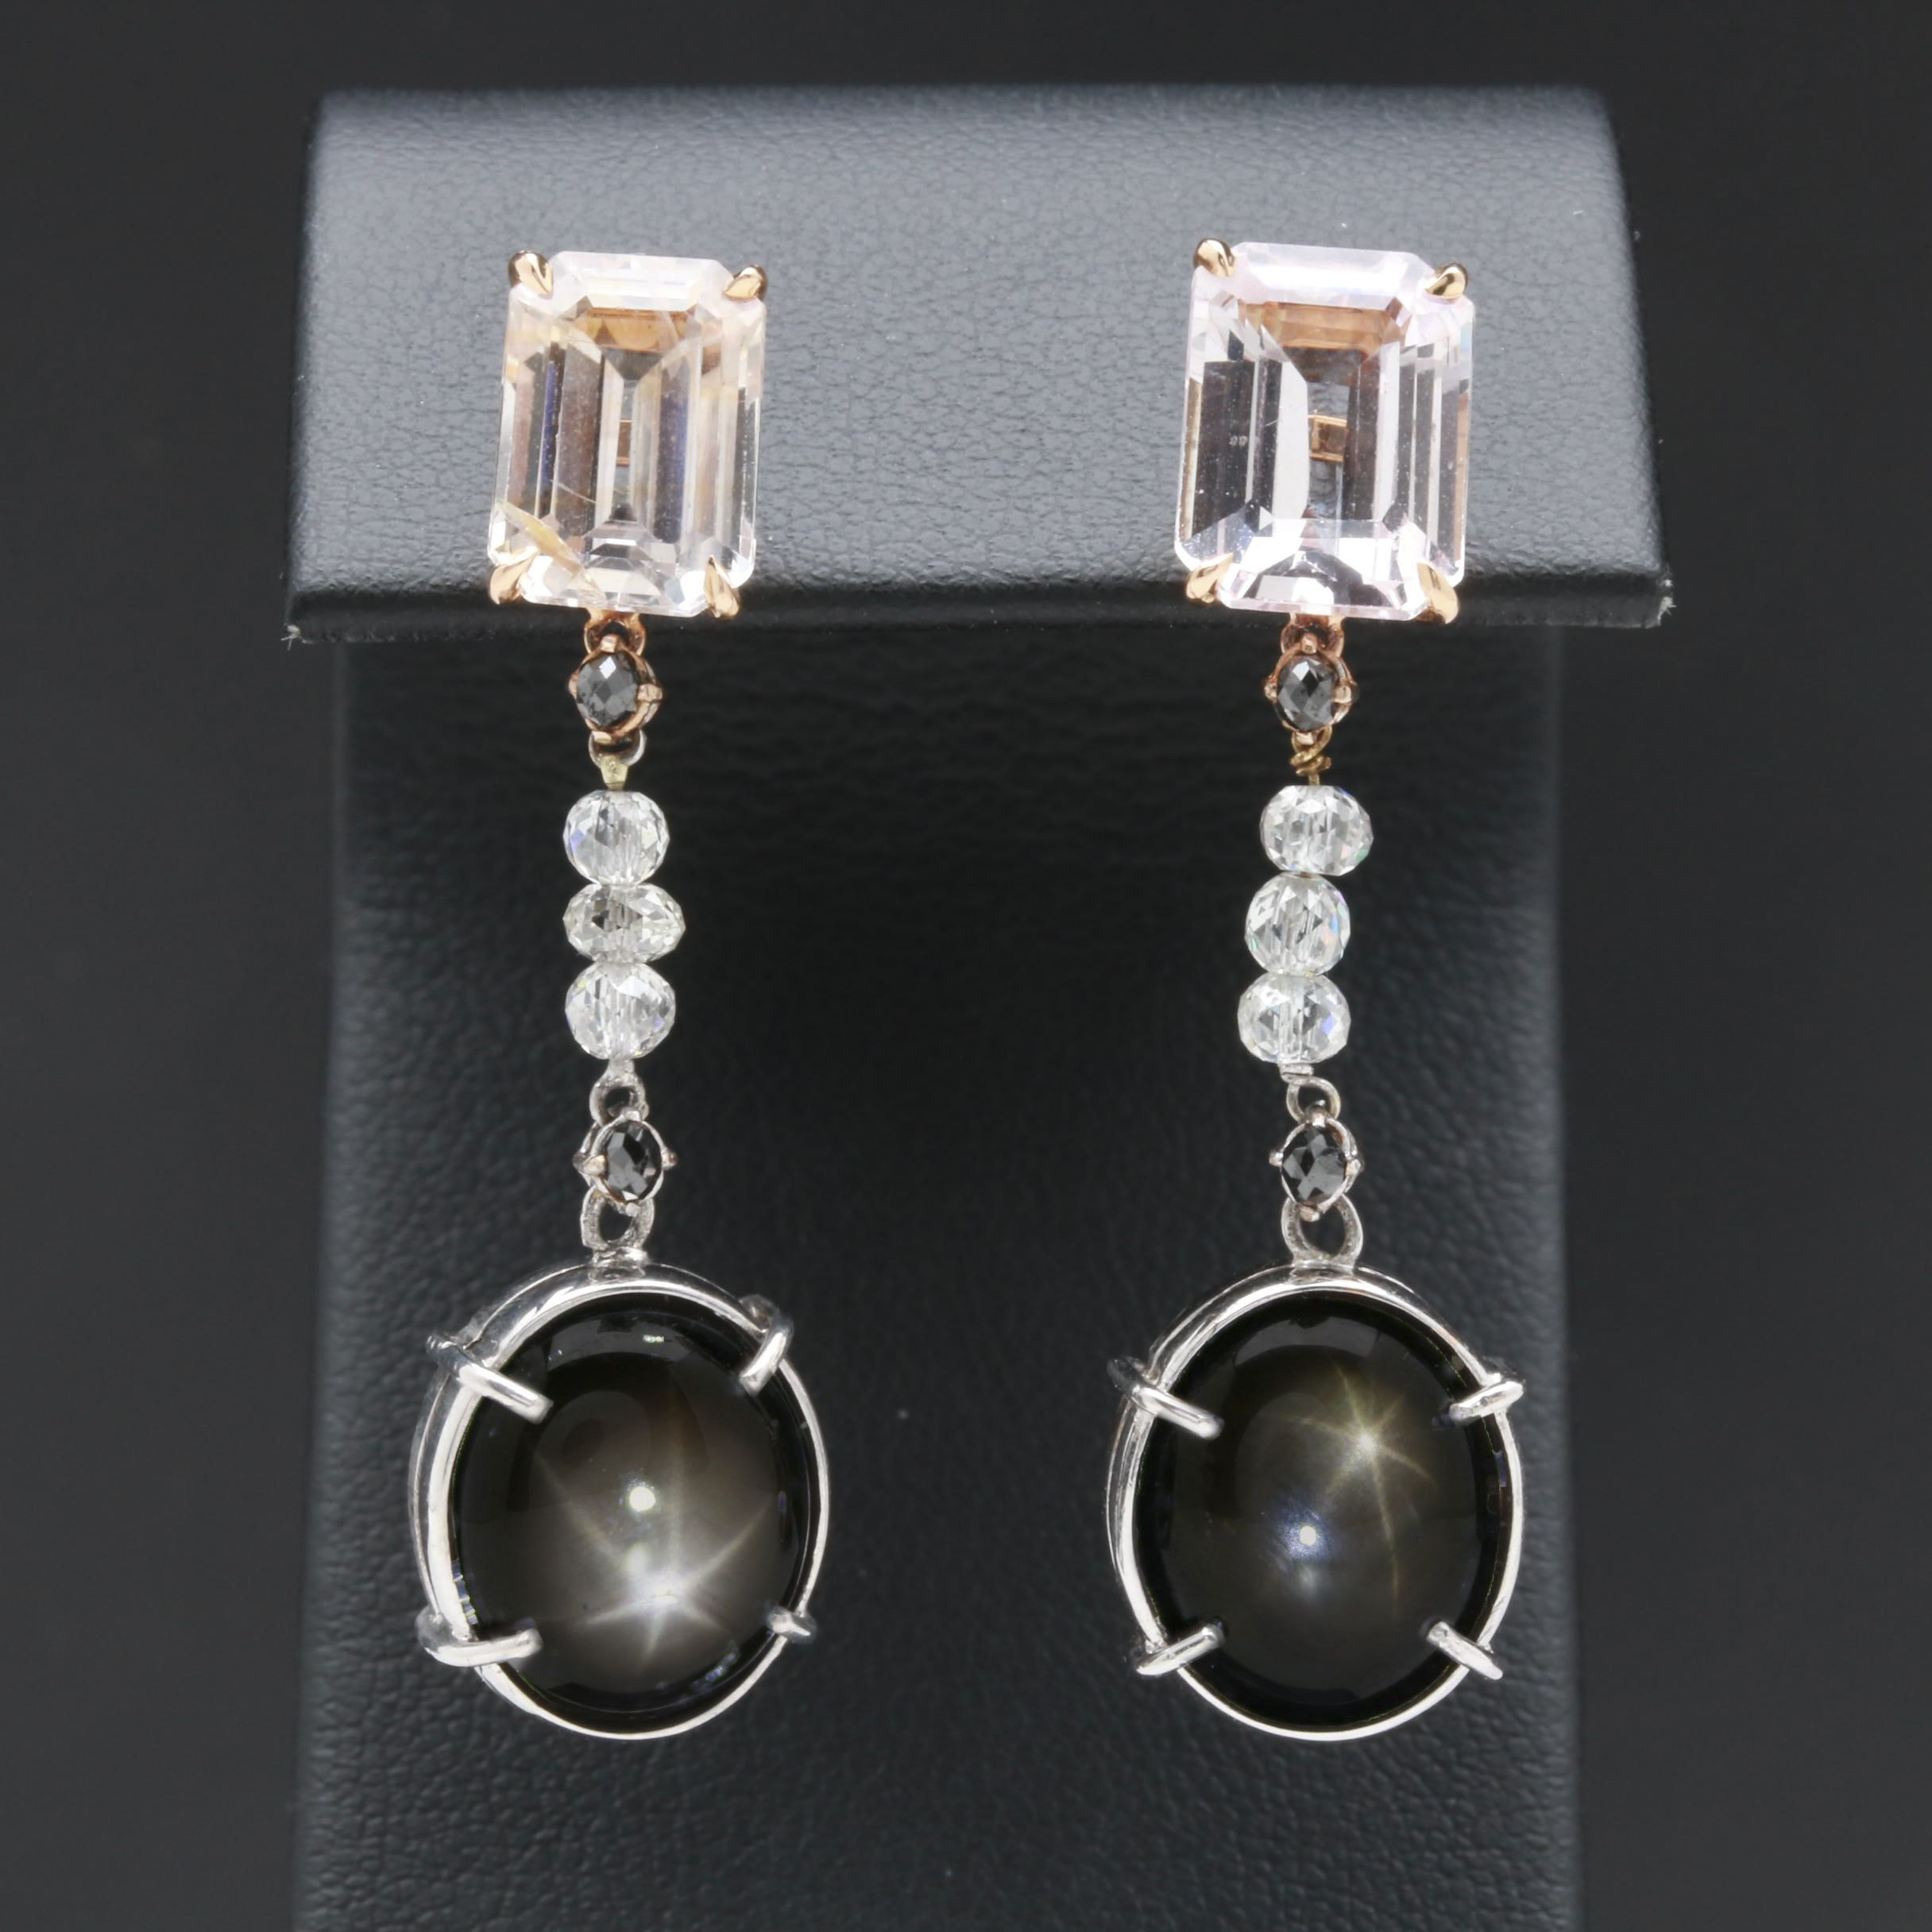 18K and 10K White and Yellow Gold Gemstone Earrings